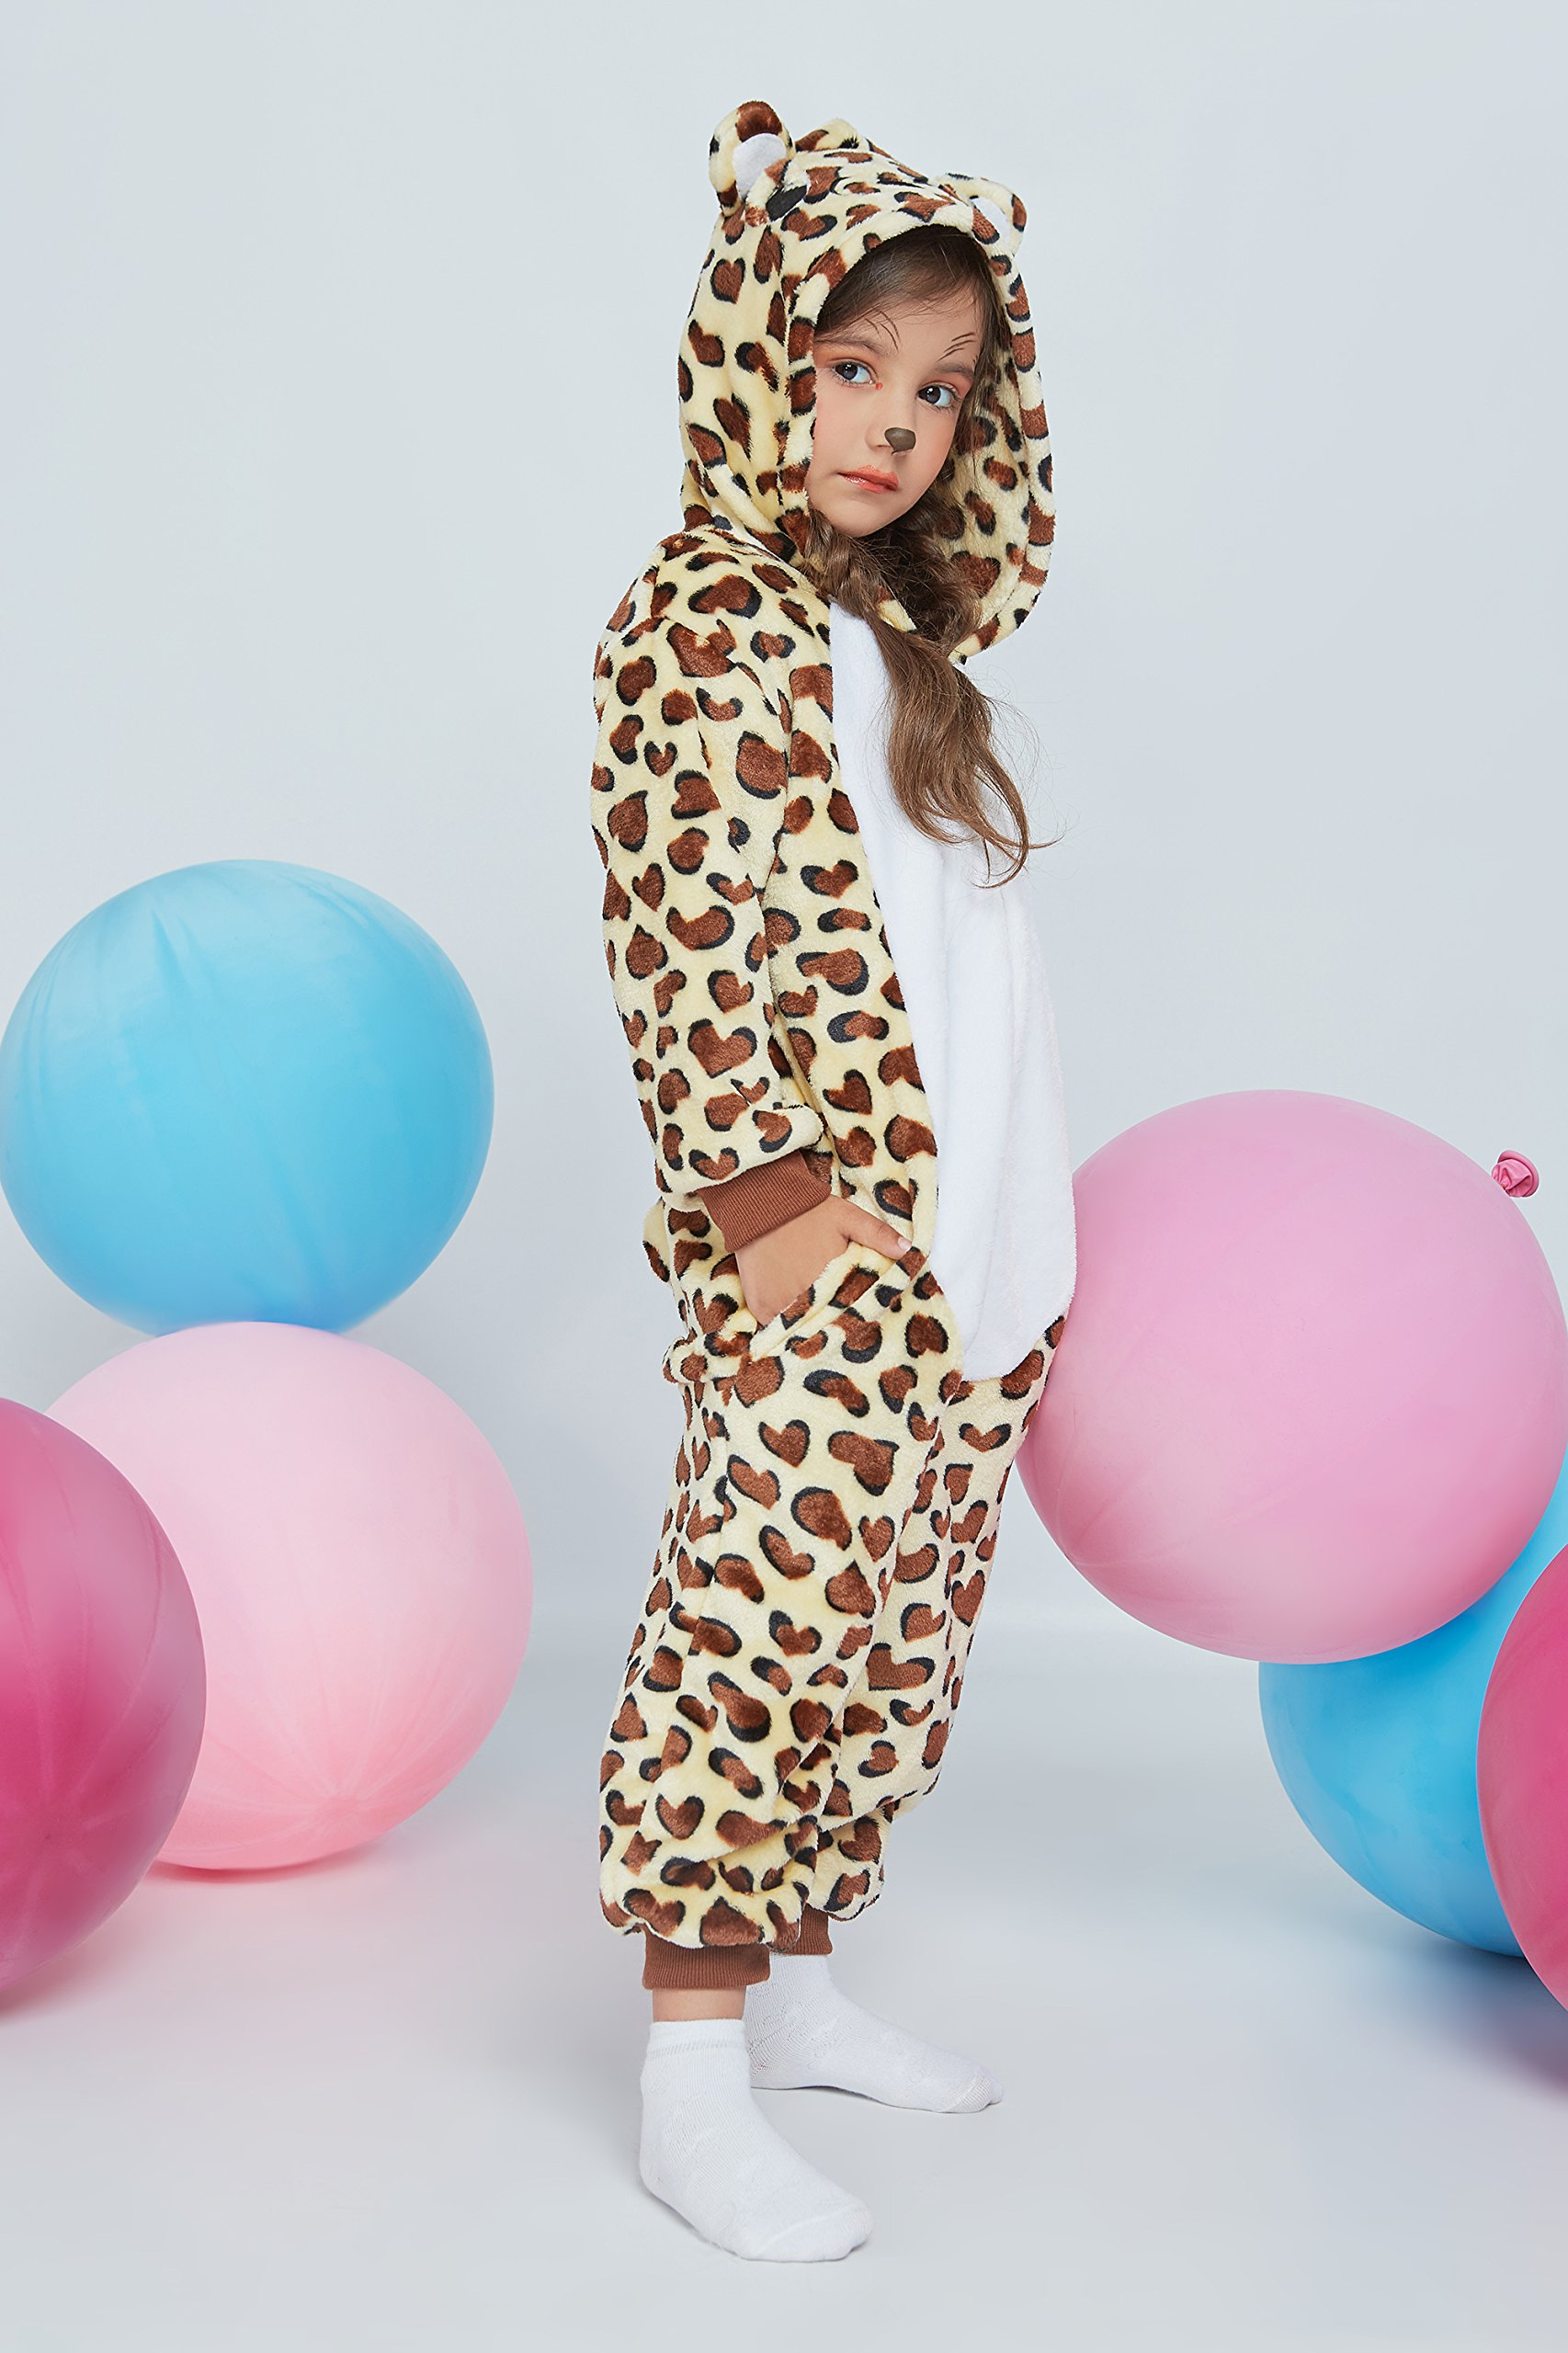 Kids Leopard Kigurumi Animal Onesie Pajamas Plush Onsie One Piece Cosplay Costume (Yellow, Brown, White) by Nothing But Love (Image #4)